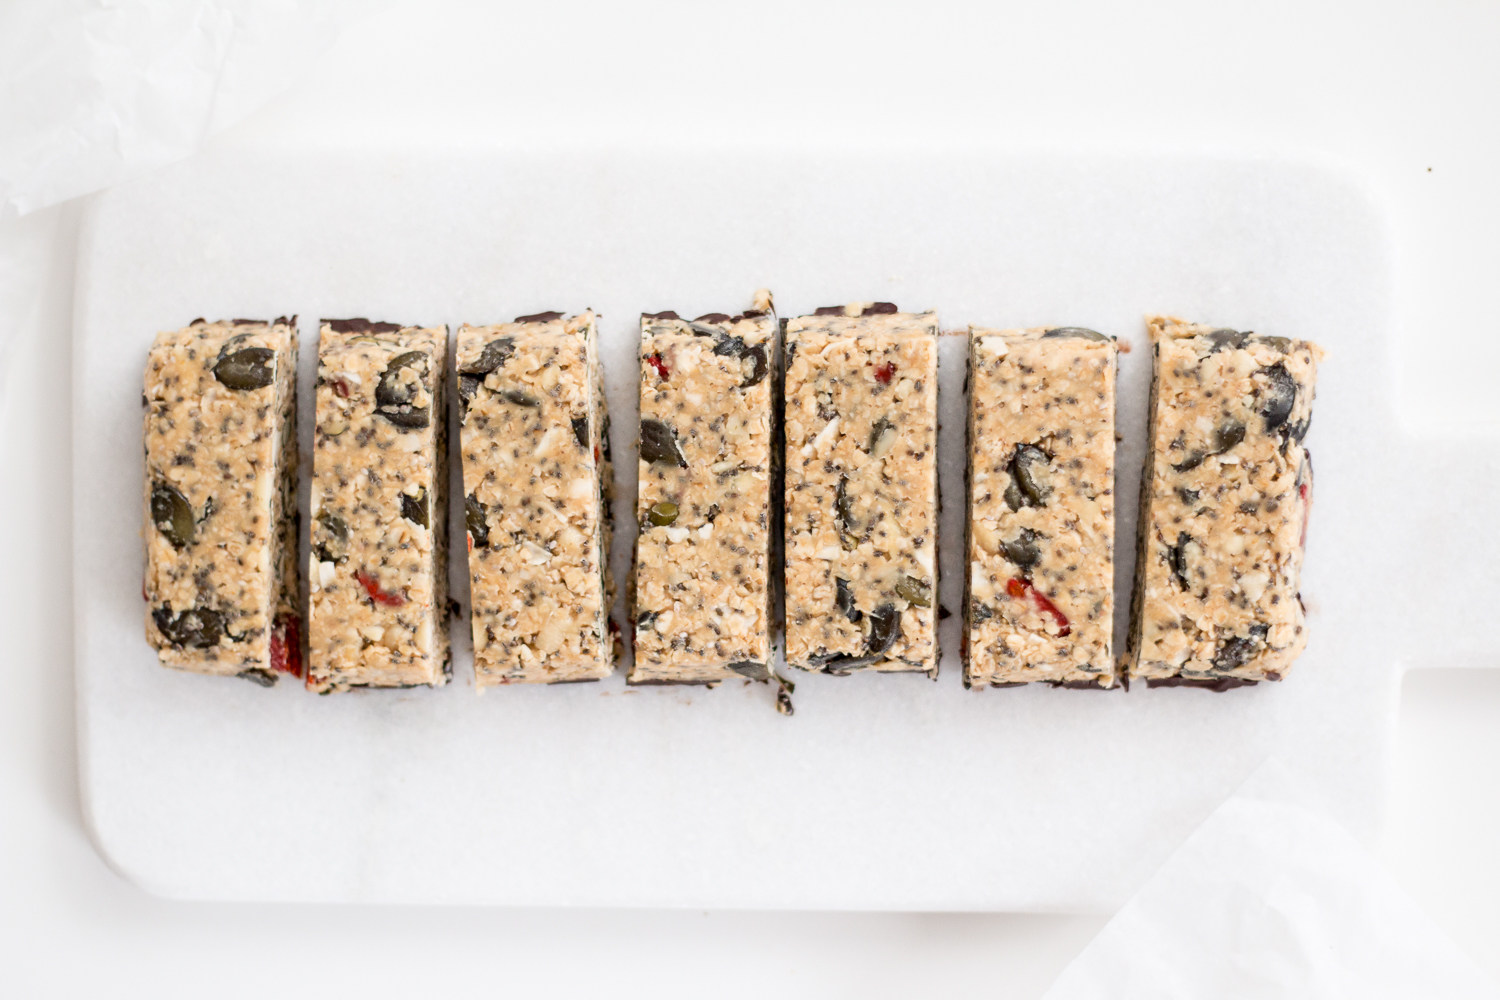 Granola Superfood Bars Recipe | Love Daily Dose